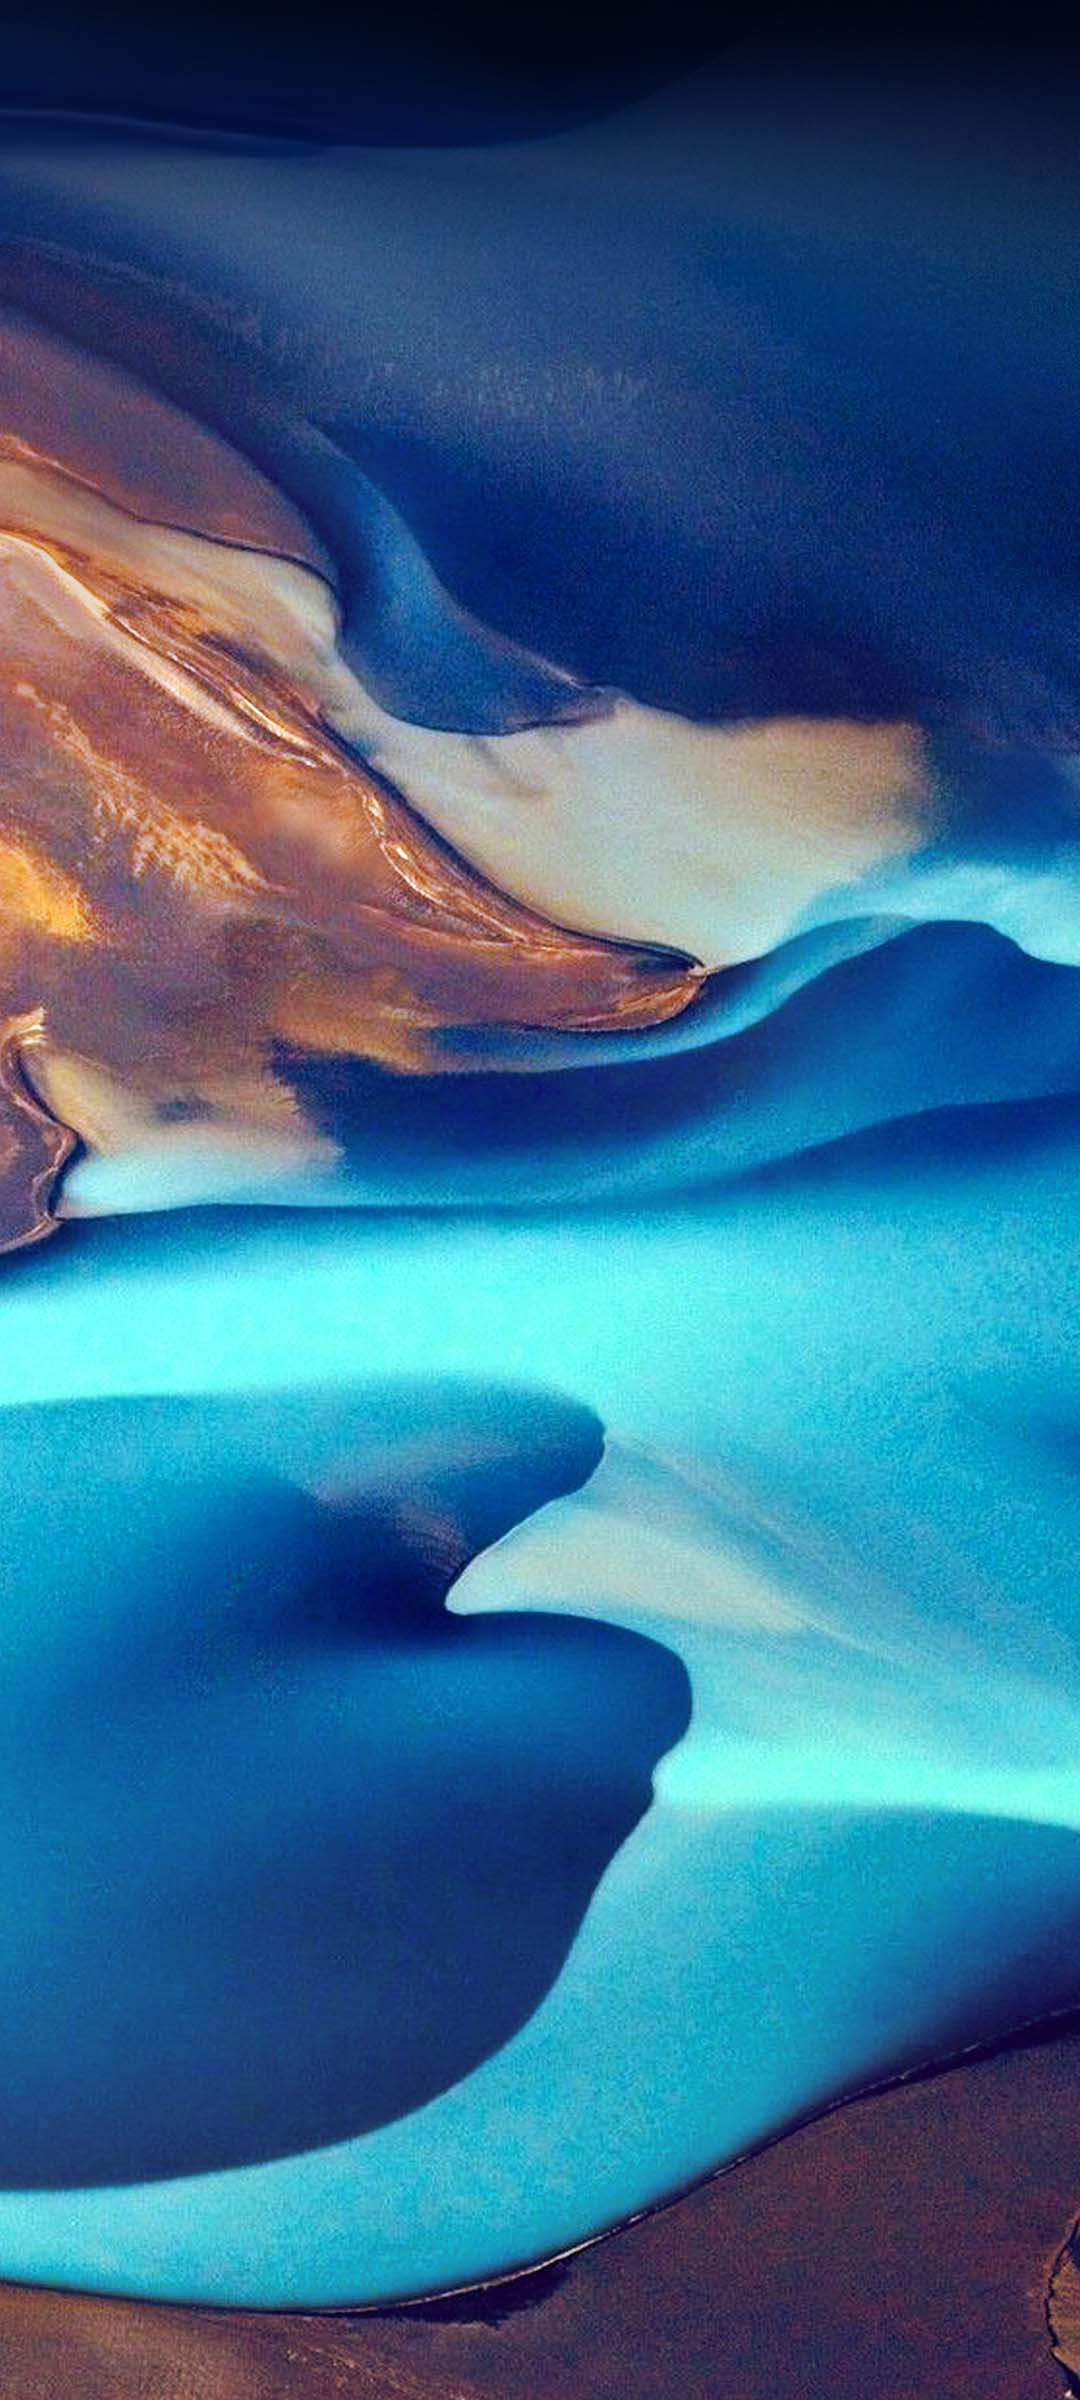 Samsung Galaxy A70 Wallpapers Fhd Download Droidviews